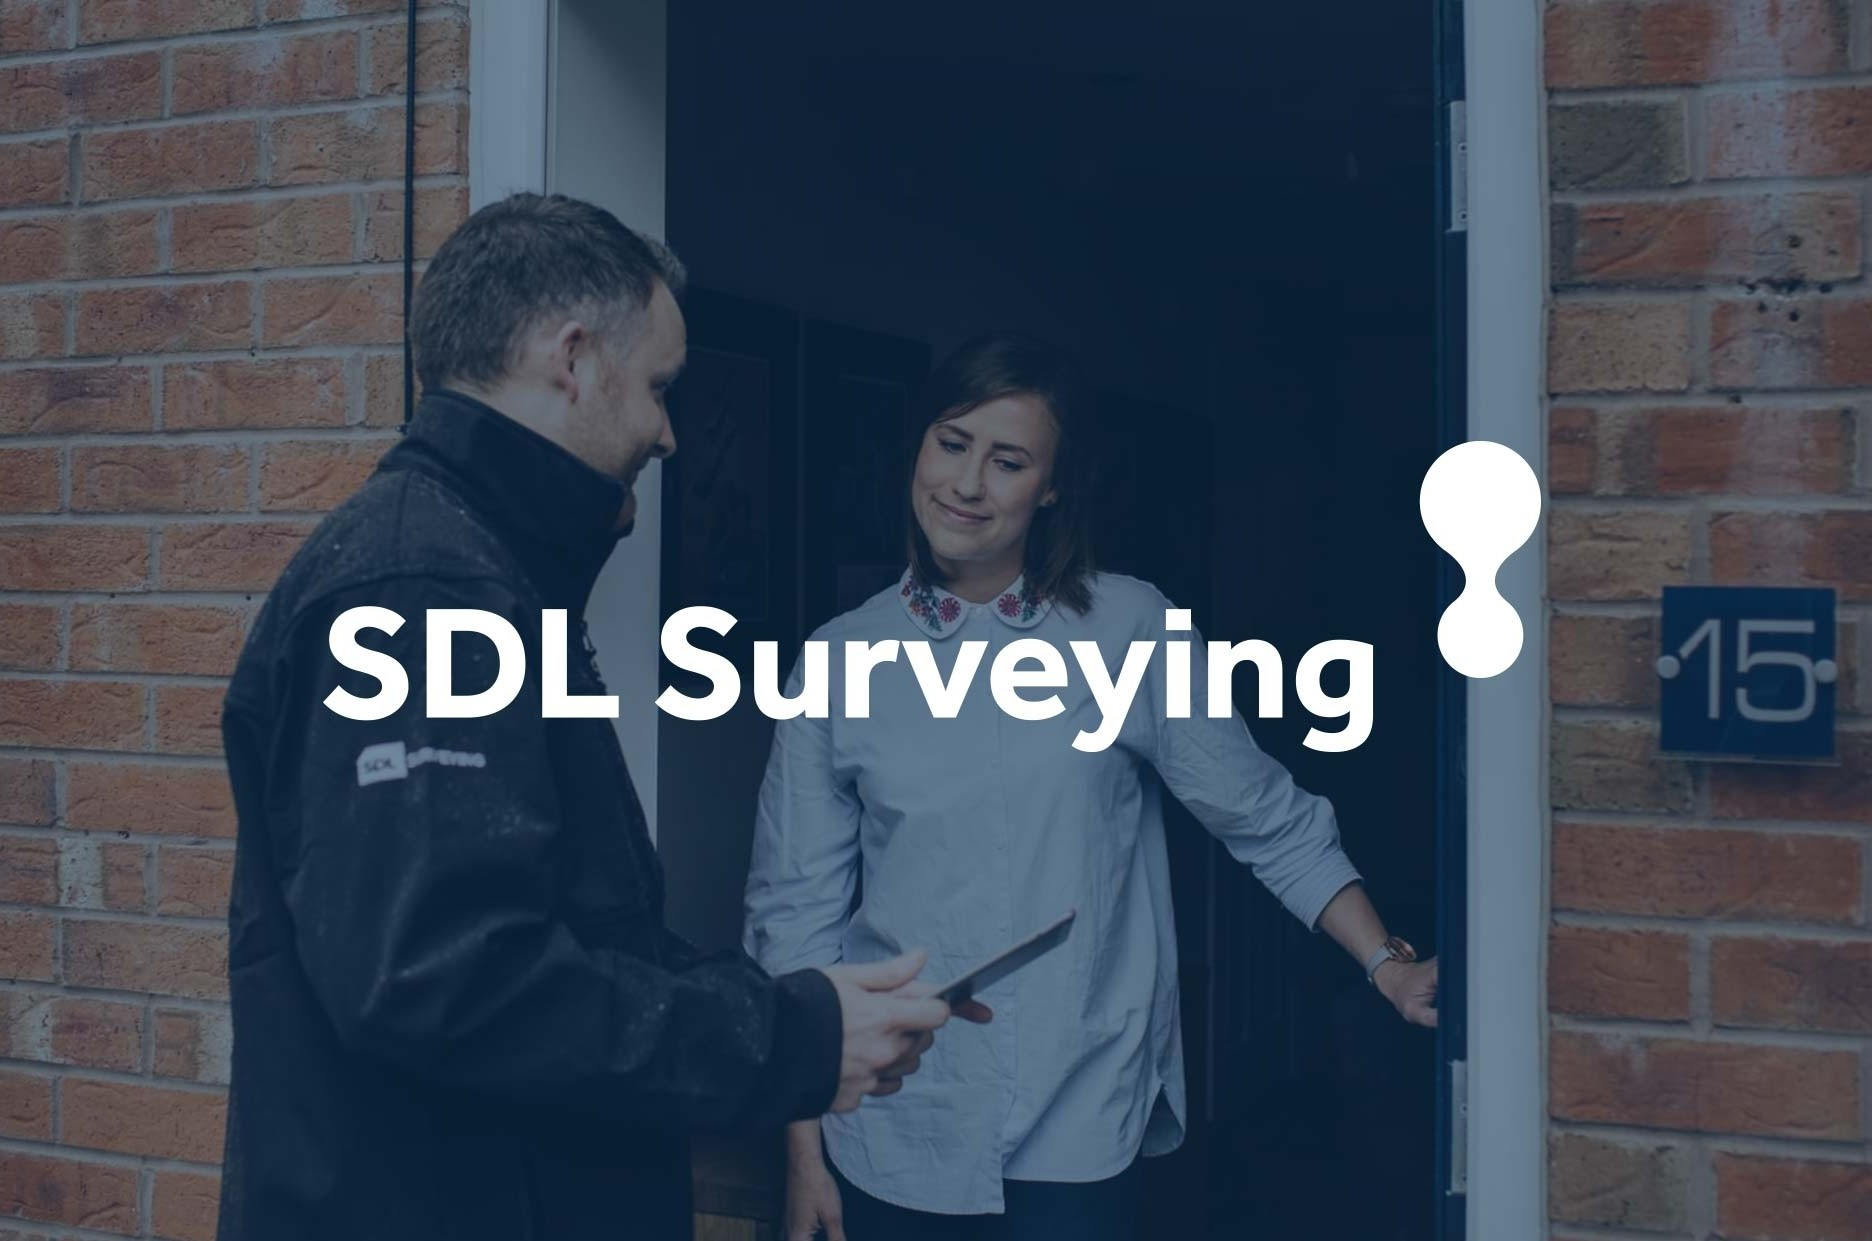 200720 - SDL Surveying - Websafe - 001